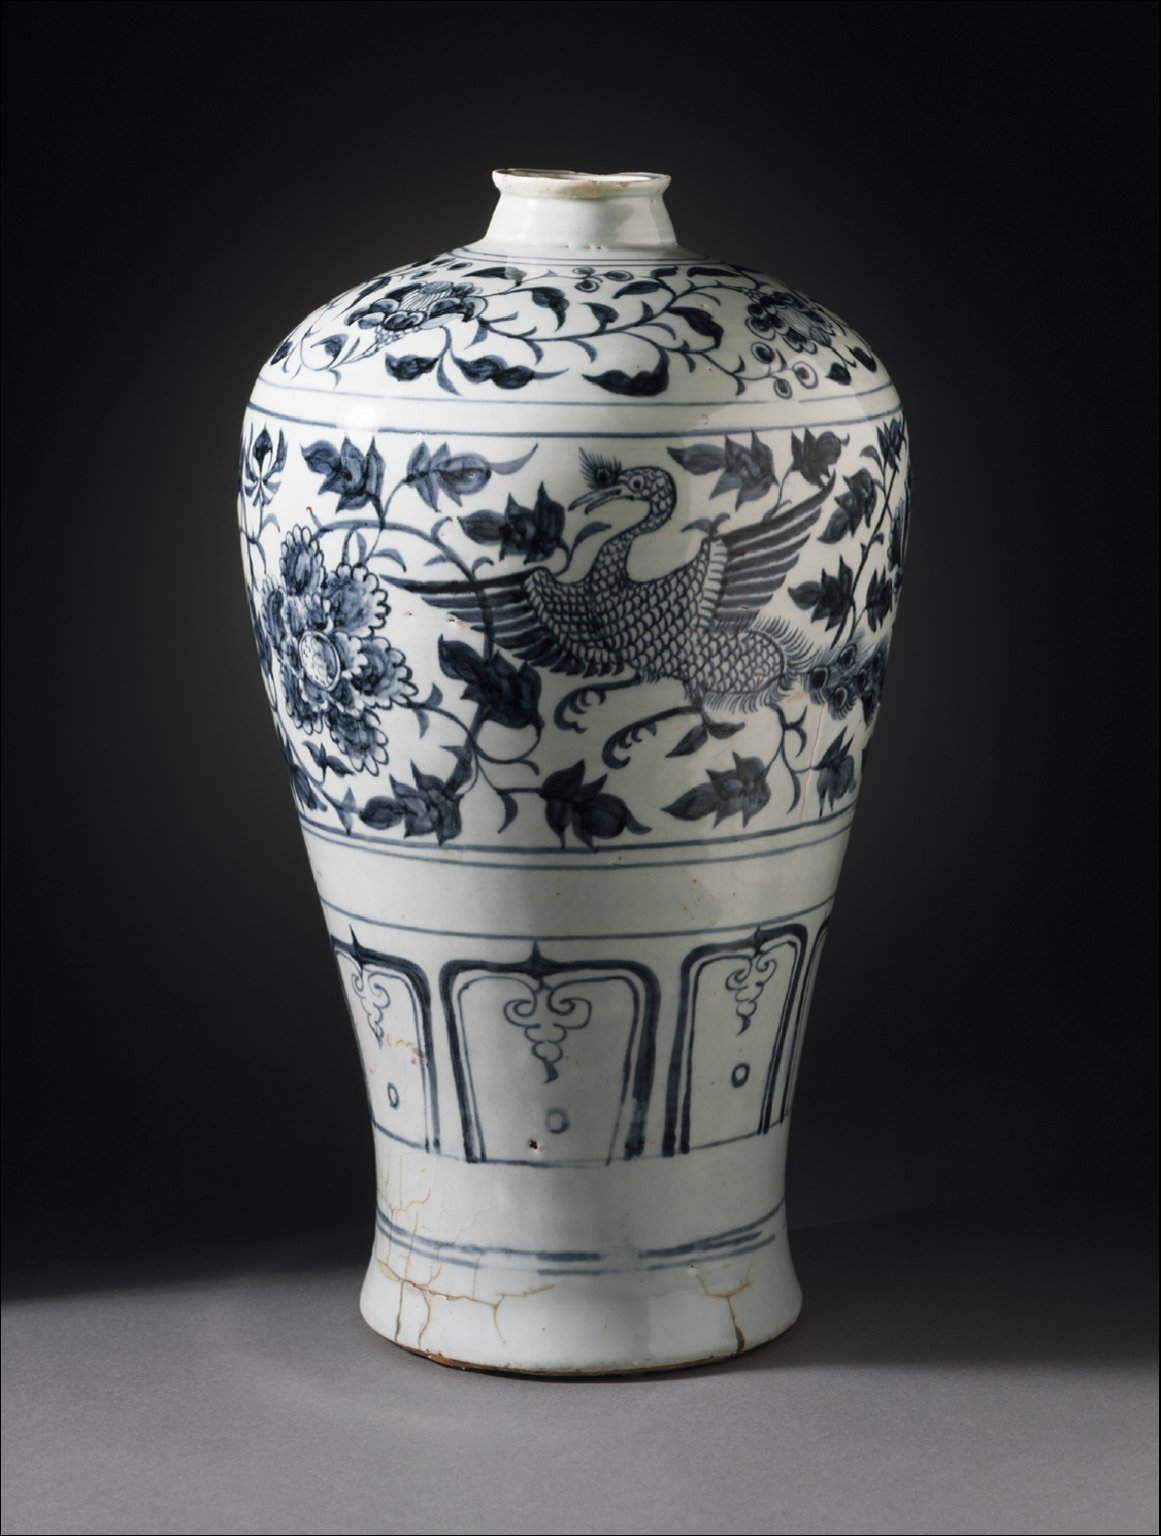 Prunus Jar (Meiping) with Pair of Peafowls in Floral Scrolls